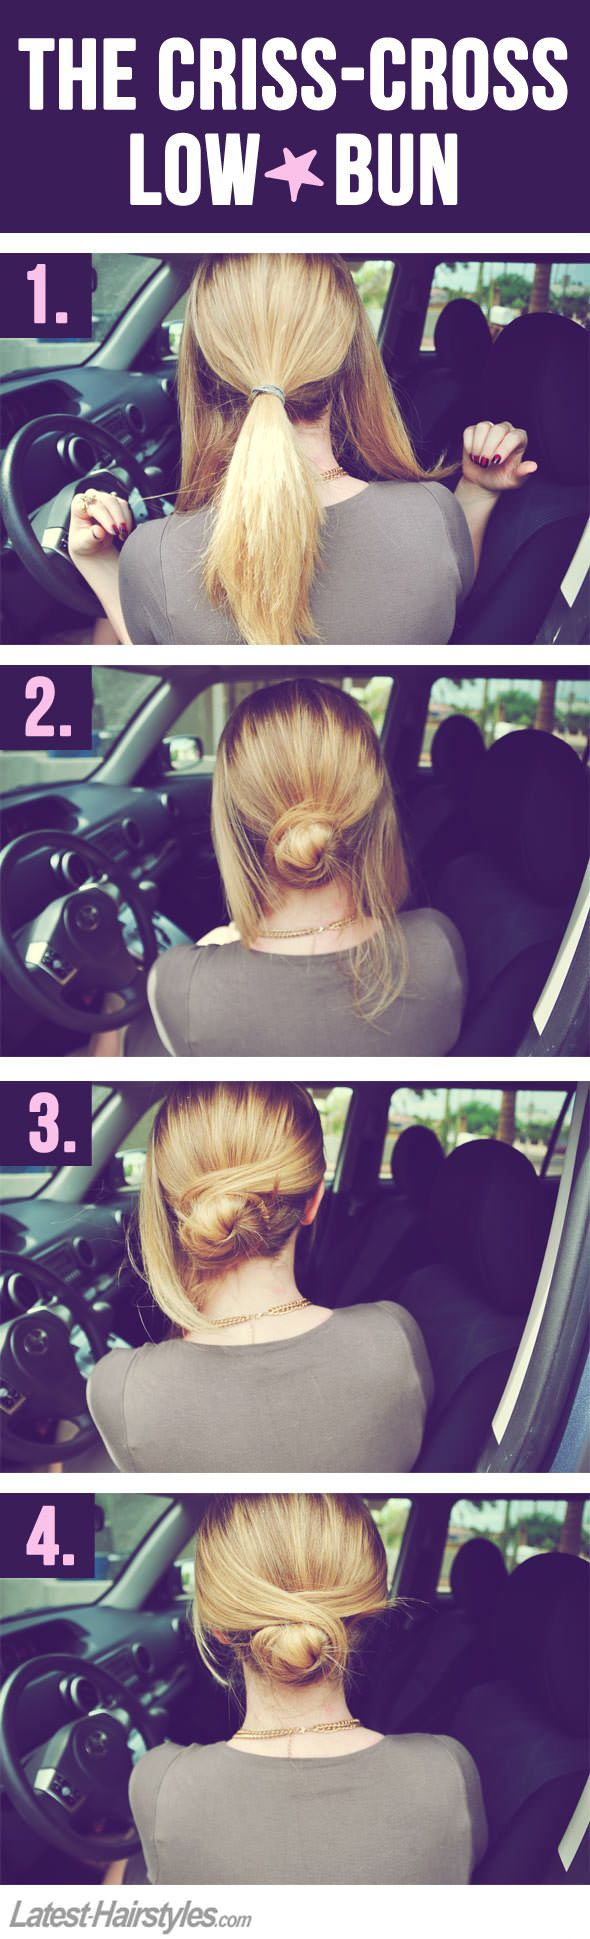 easy criss-cross low bun